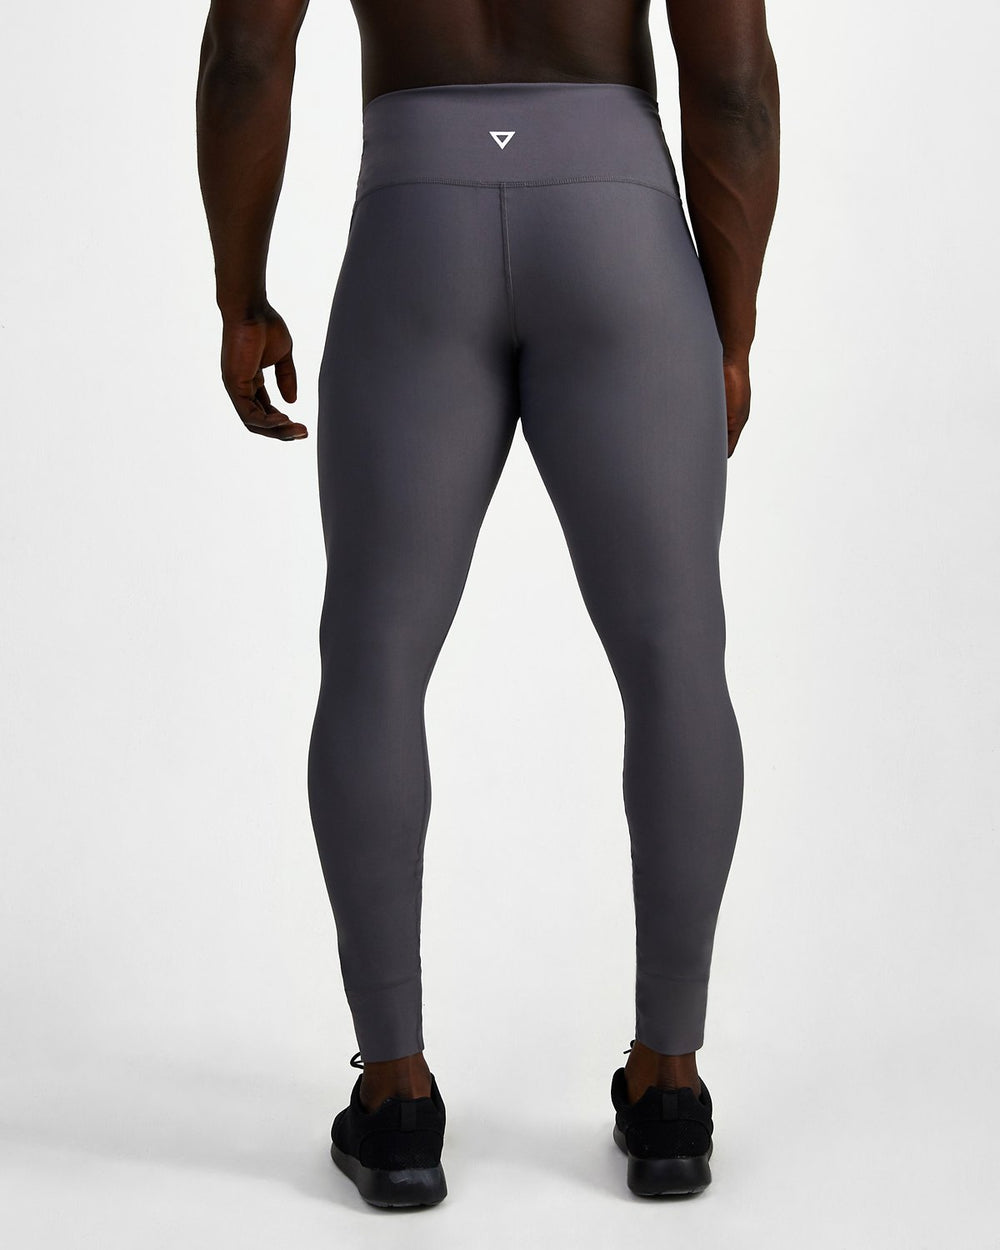 men's slate contour leggings